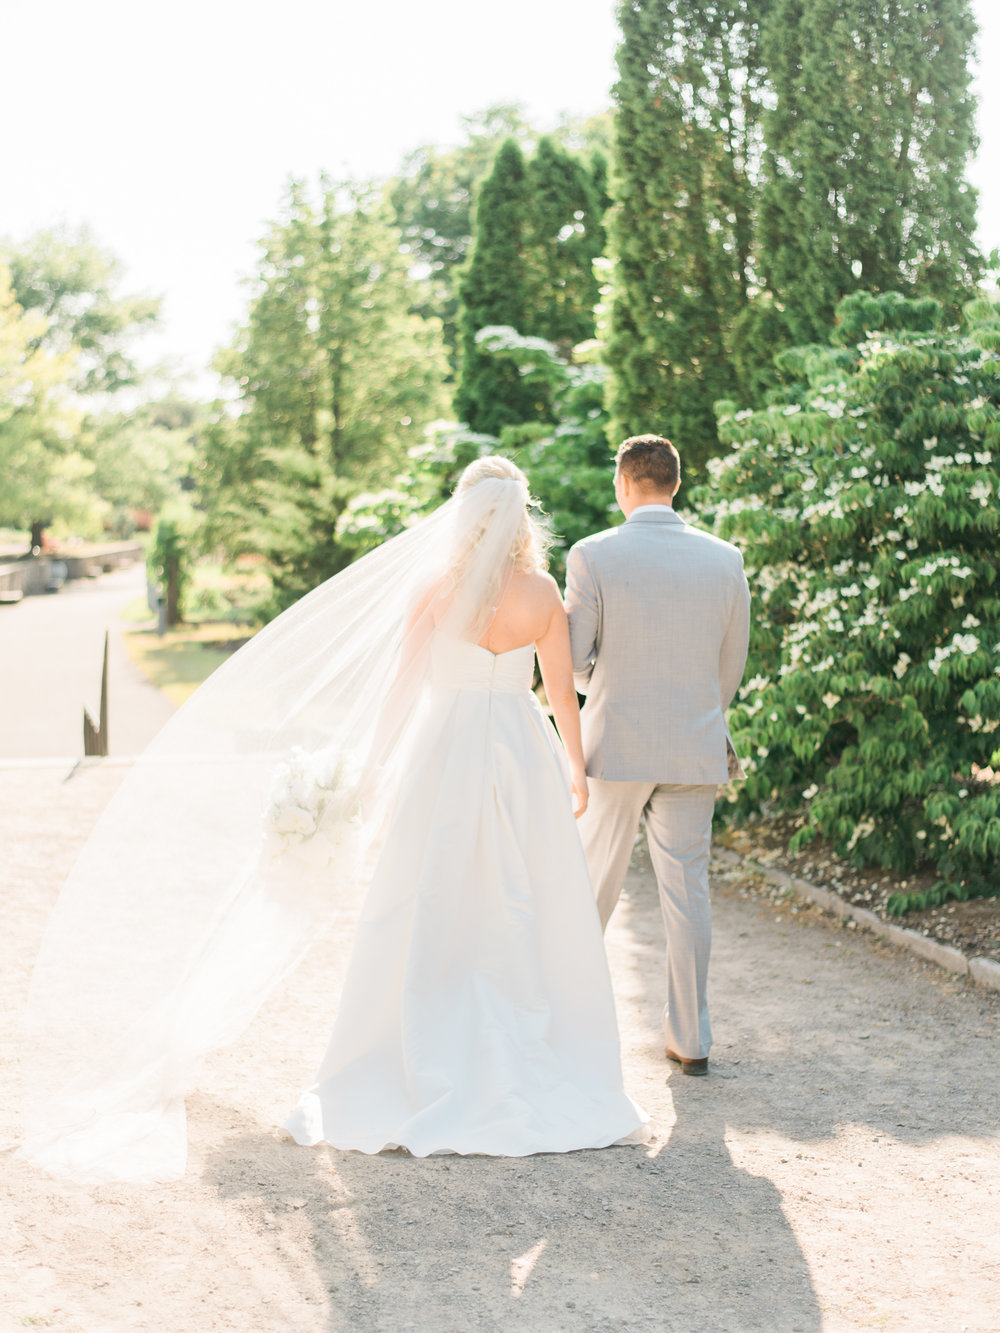 Royal Botanical Gardens Wedding | Hamilton & Destination Wedding Photography